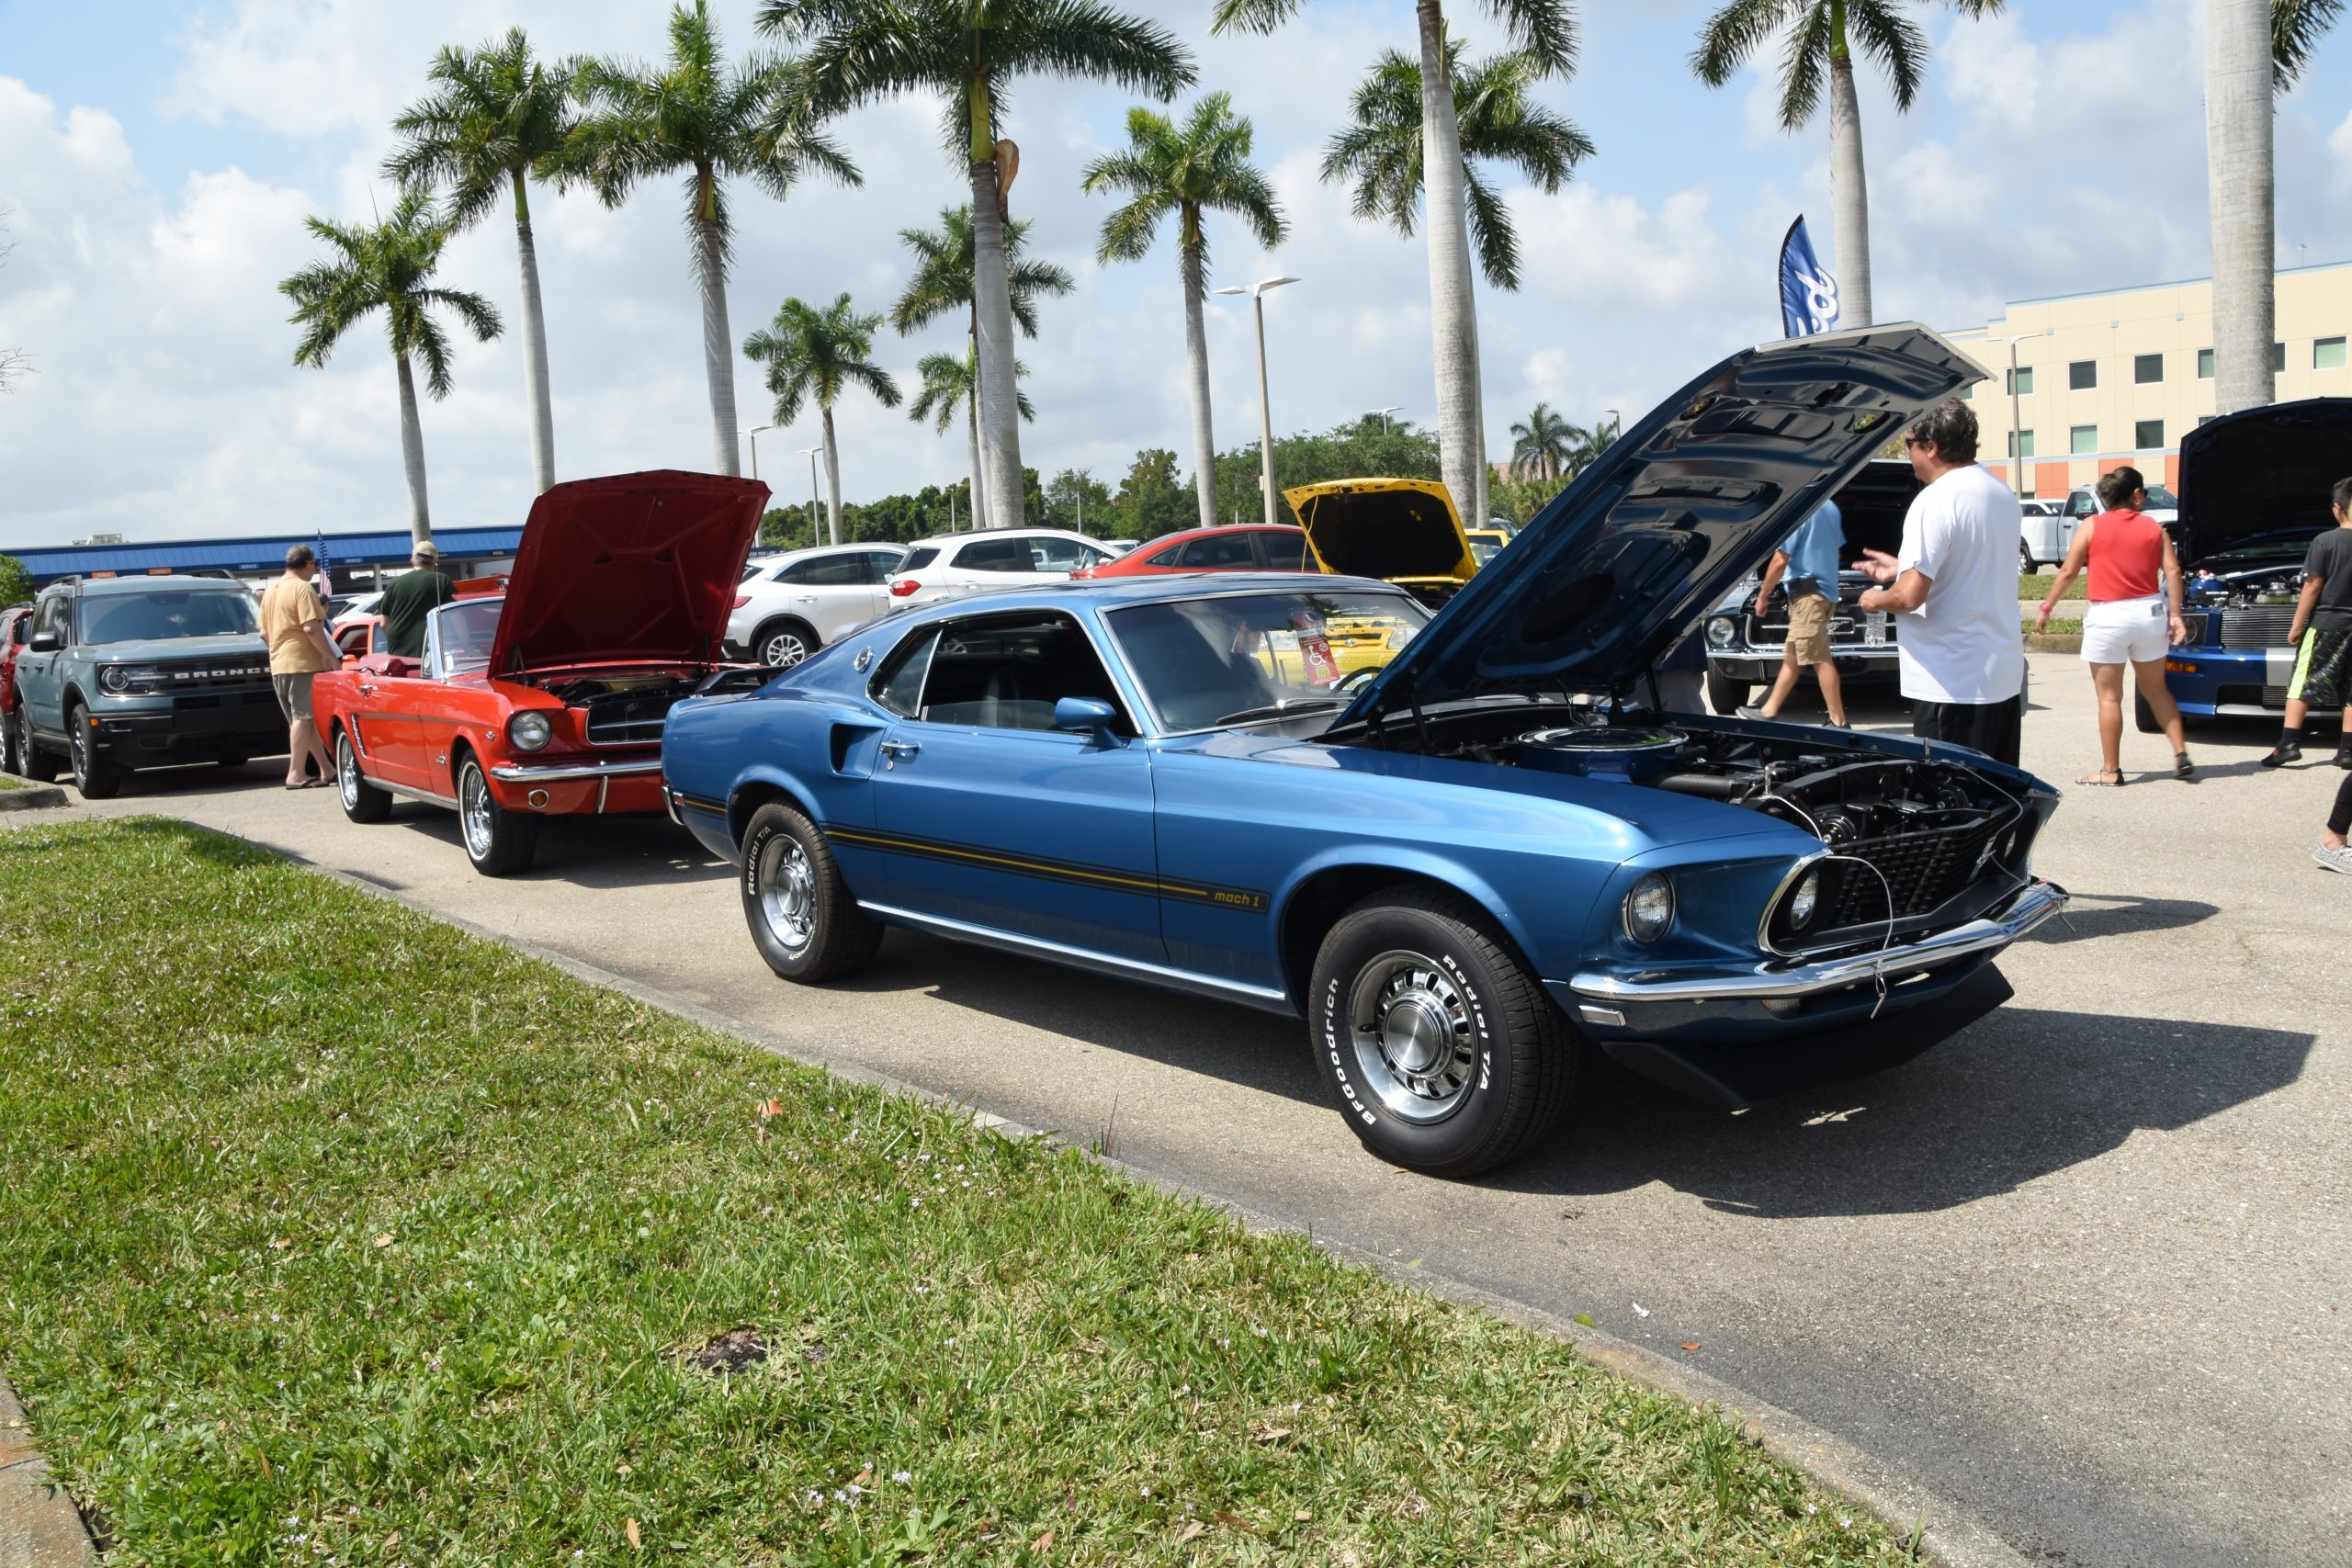 Blue Mustang with hood open